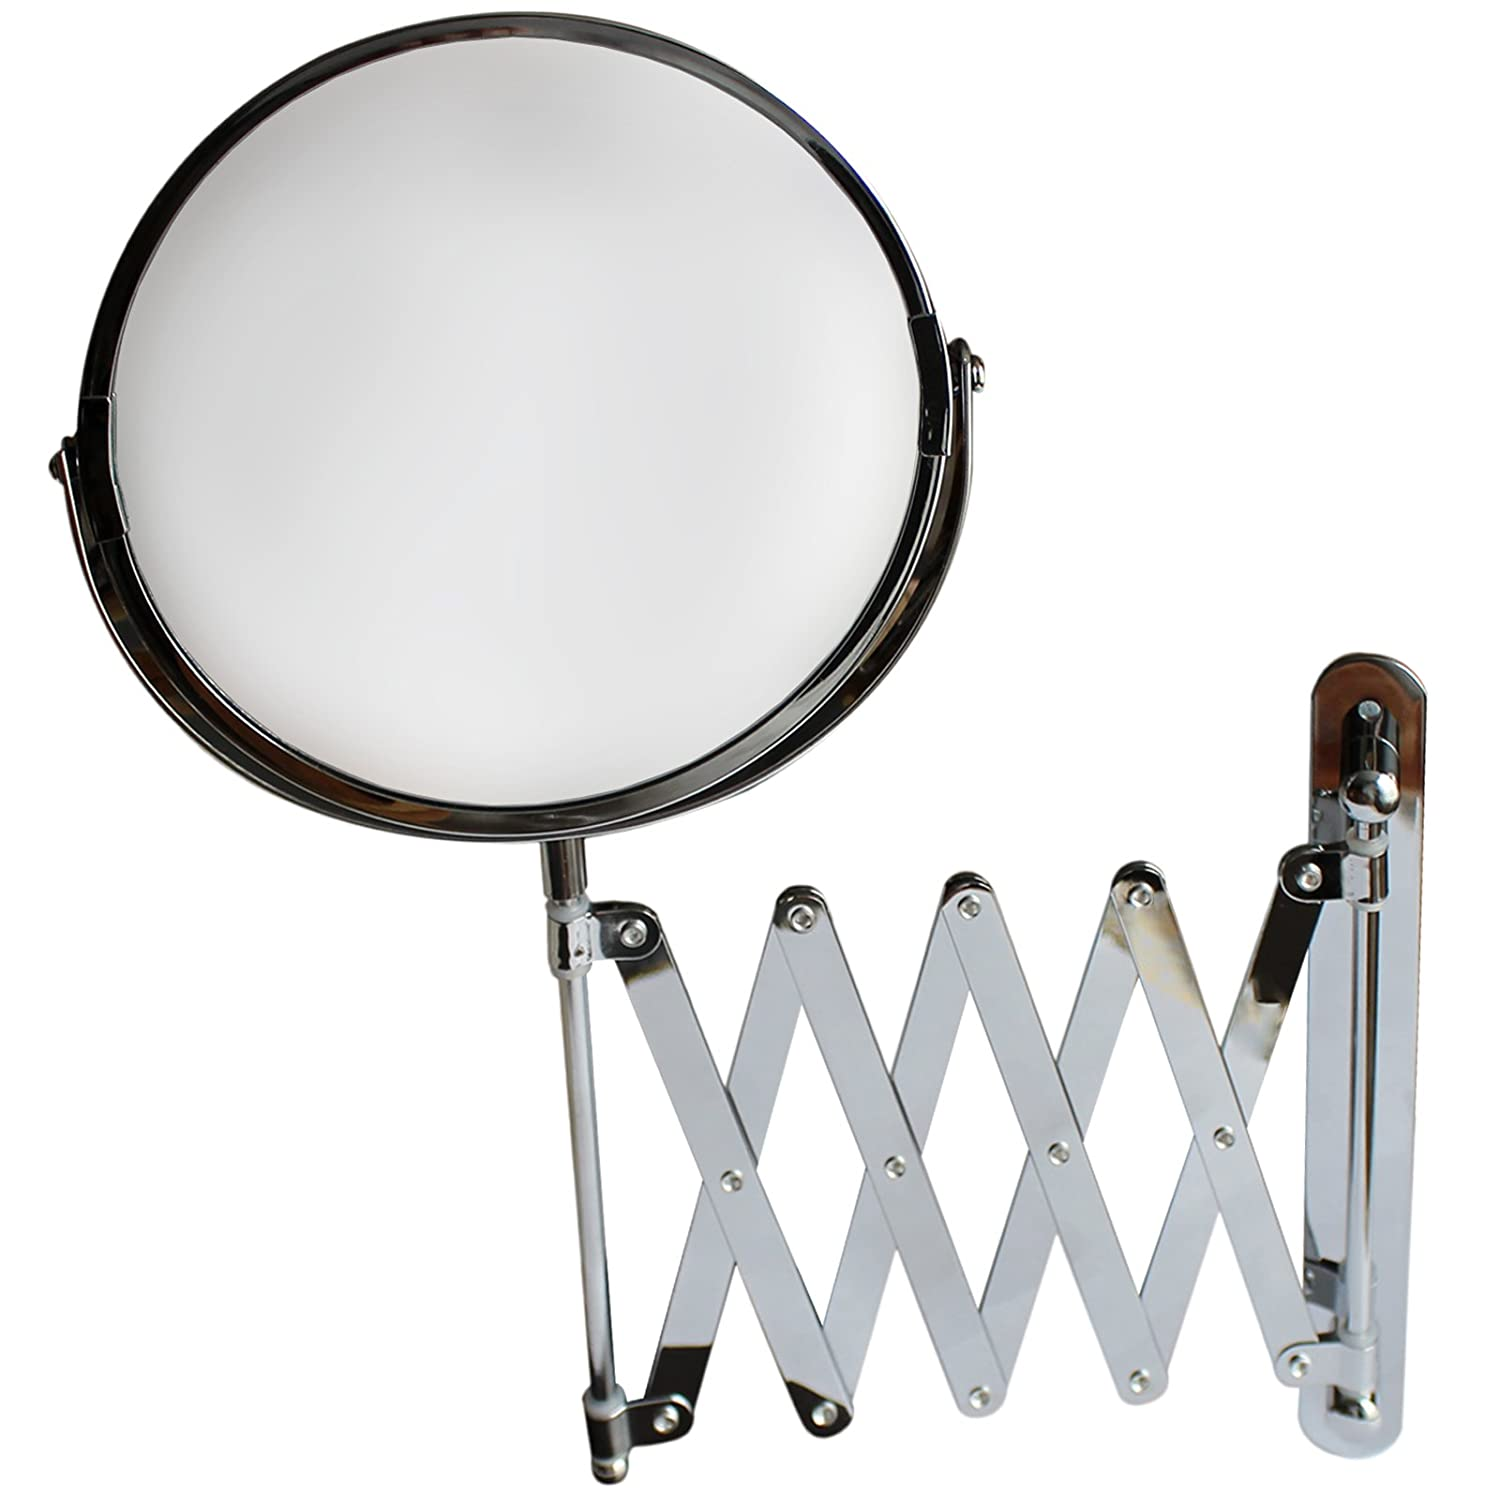 BELLE VOUS 7 Inch Large Wall Mounted Extension Vanity Mirror 1x and 3x Magnification - 16 Inch Maximum Extension - For Bathroom and Bedroom - Stainless Steel Chrome Finish - Swivel Head Design